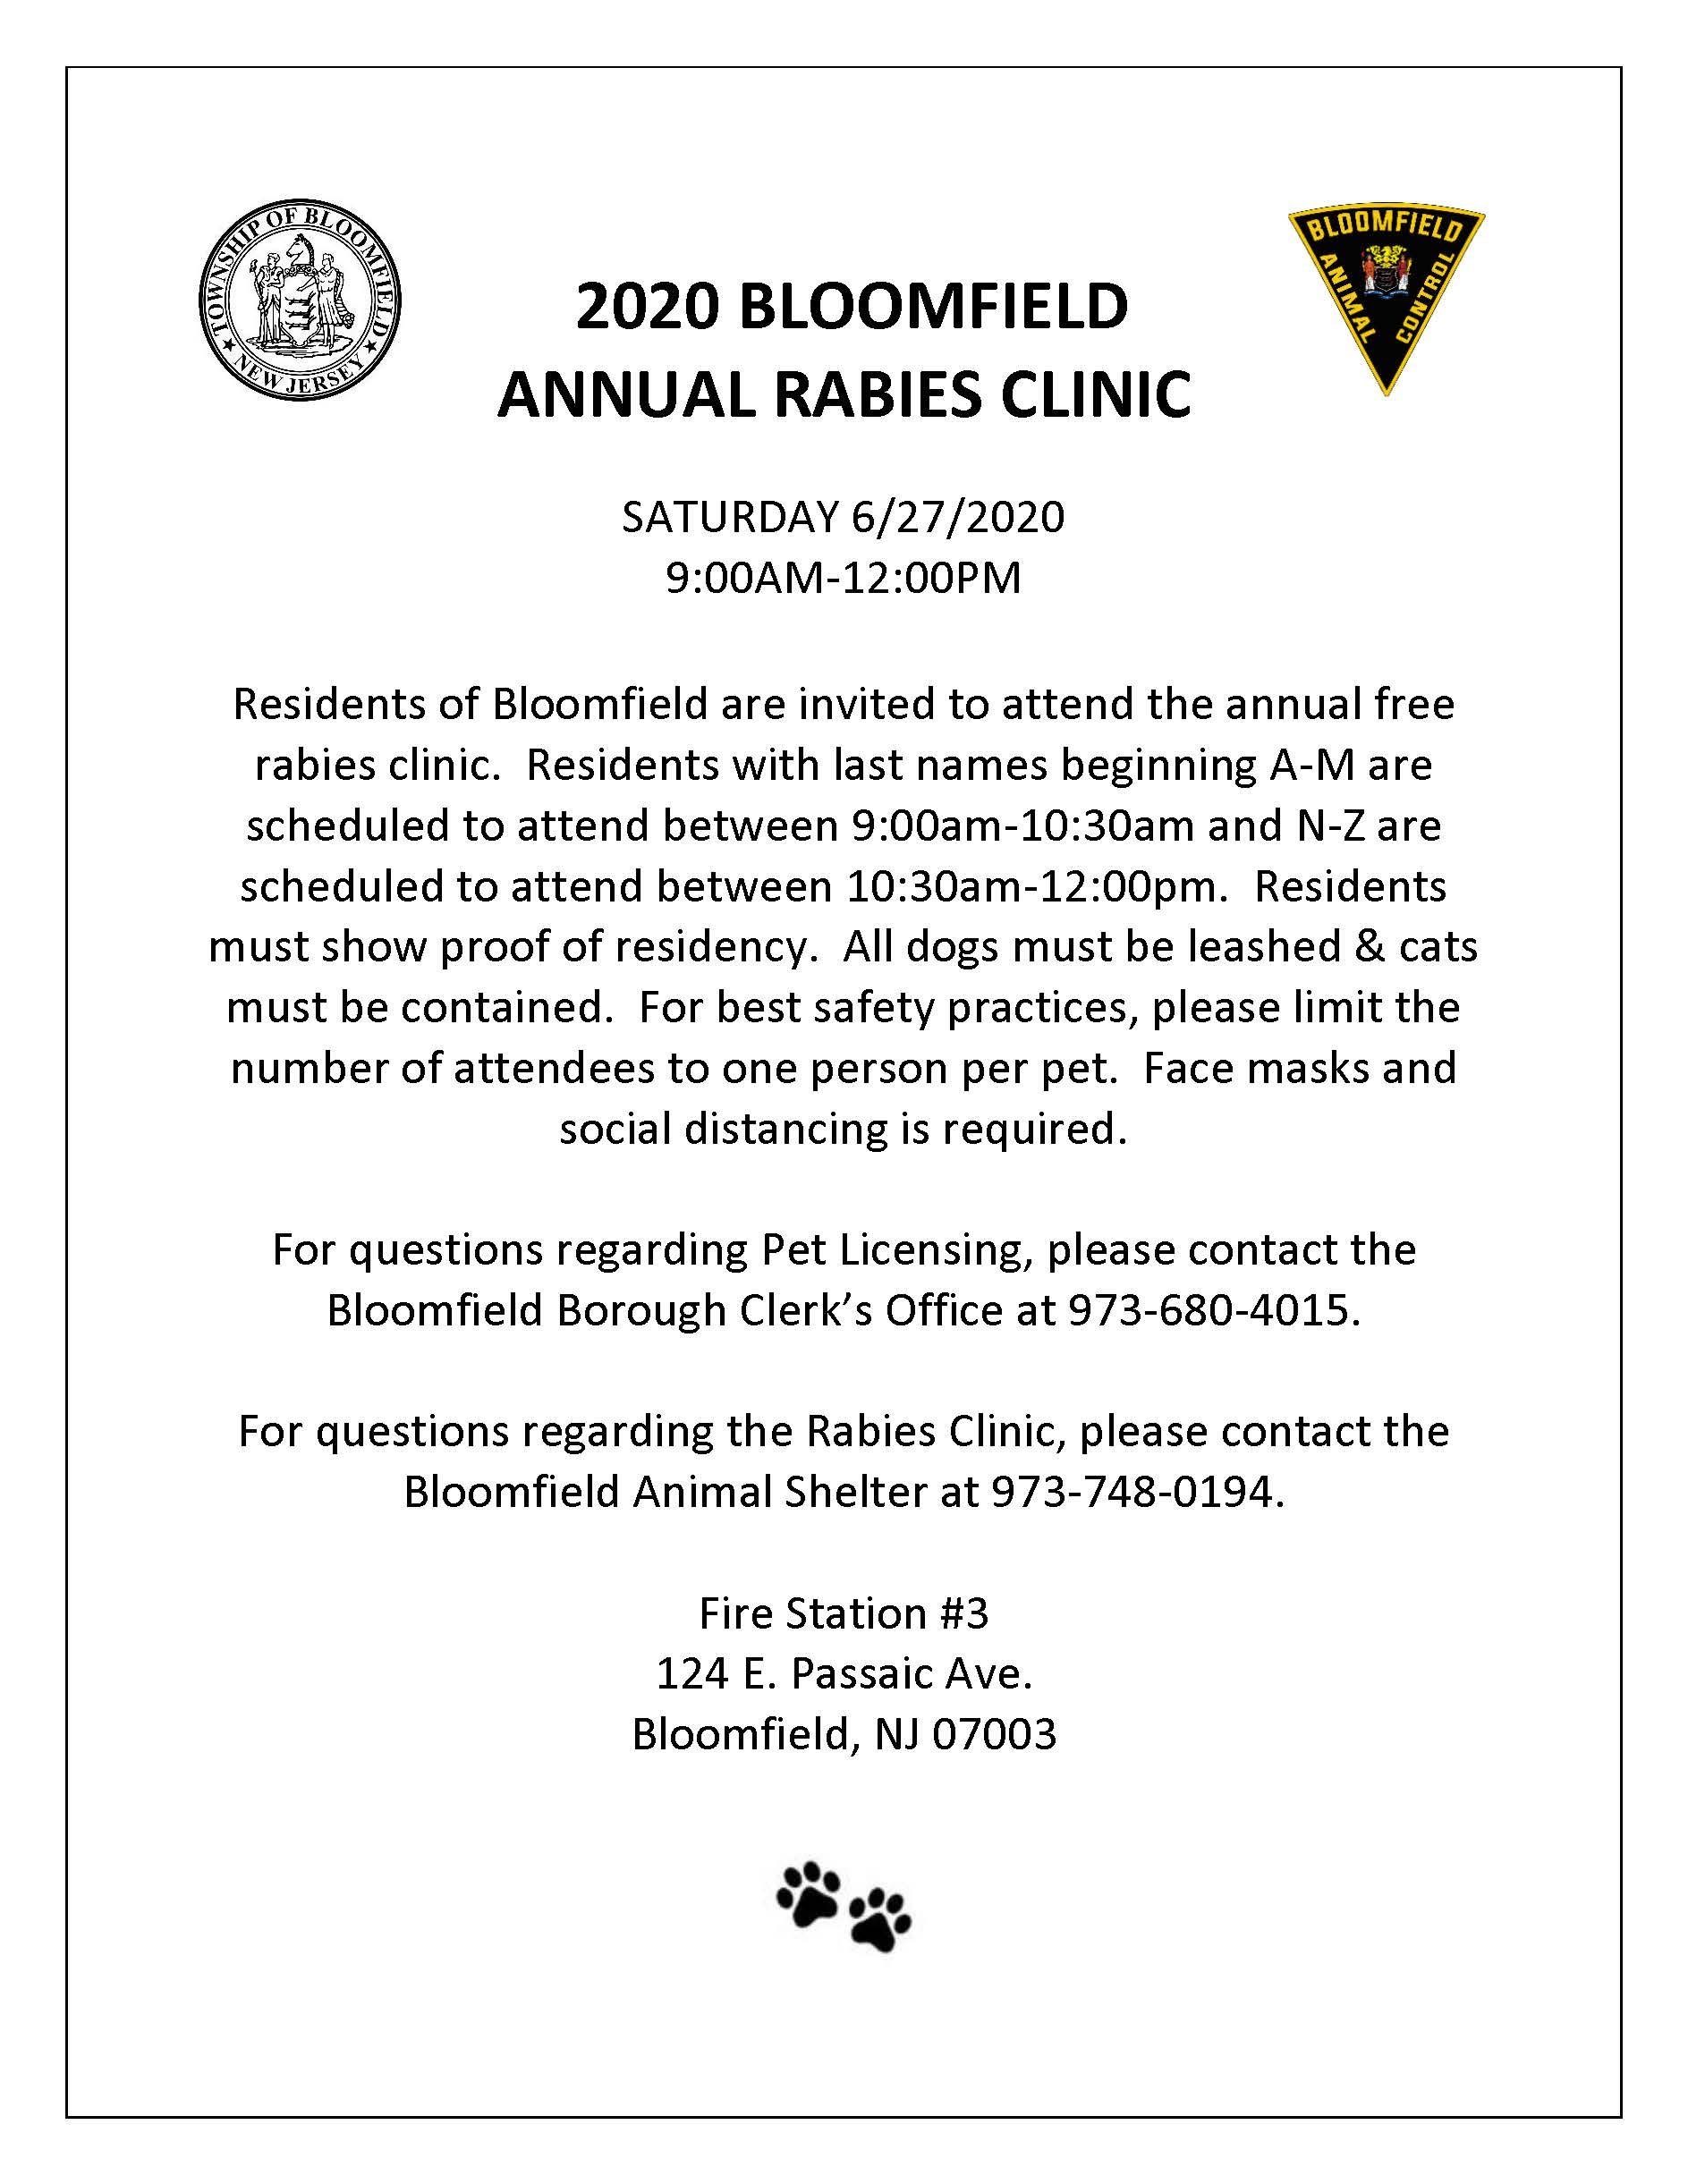 2020 BLOOMFIELD ANNUAL RABIES CLINIC FLYER